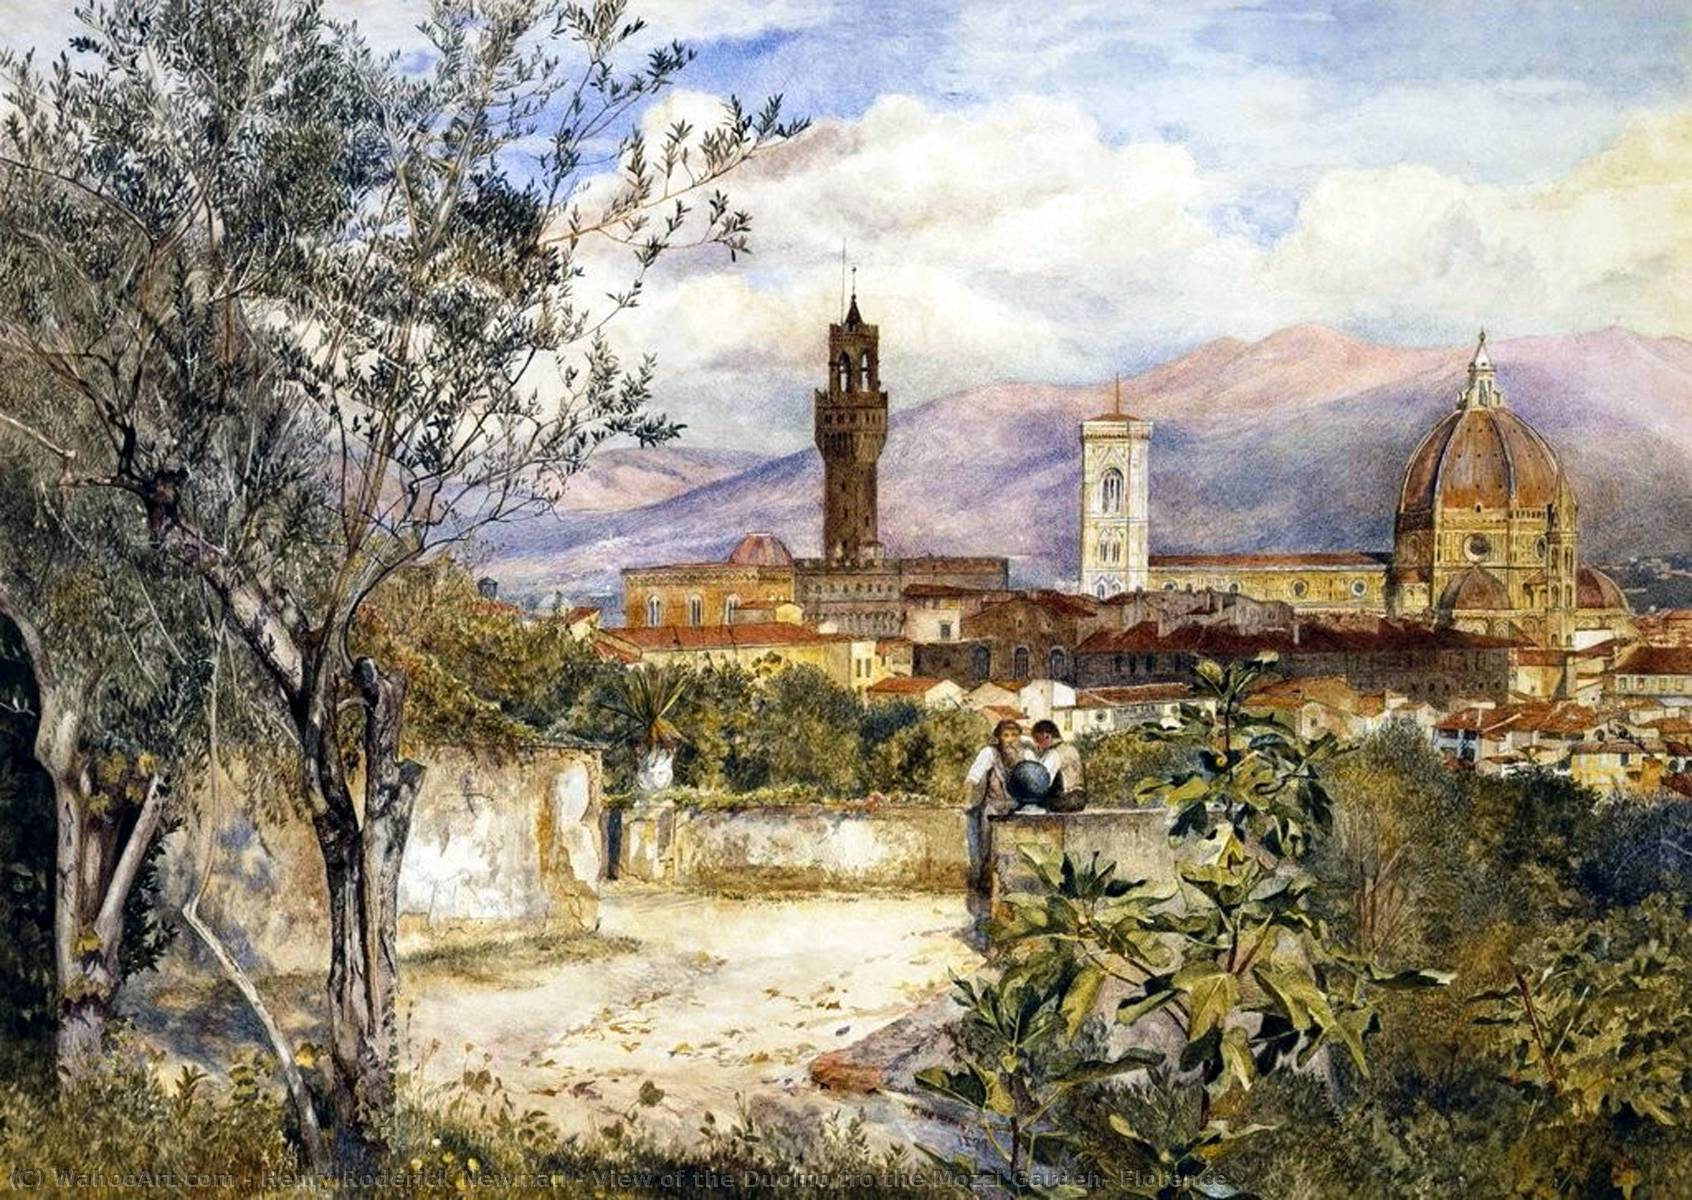 View of the Duomo fro the Mozzi Garden, Florence, 1877 by Henry Roderick Newman (1833-1918, United States) | Famous Paintings Reproductions | WahooArt.com